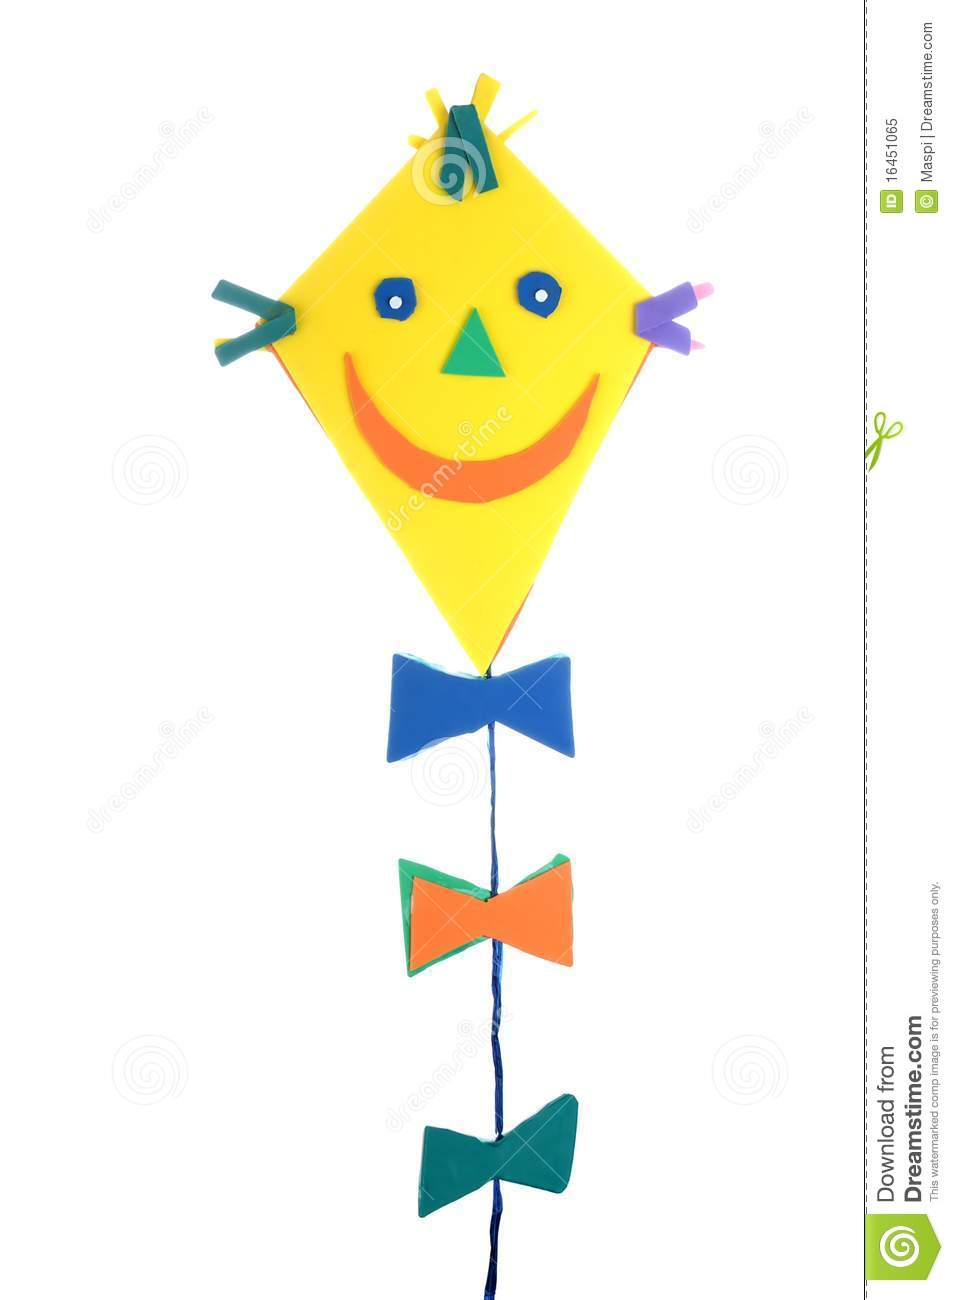 Kite decoration stock image image of smile decoration 16451065 for Decoration image